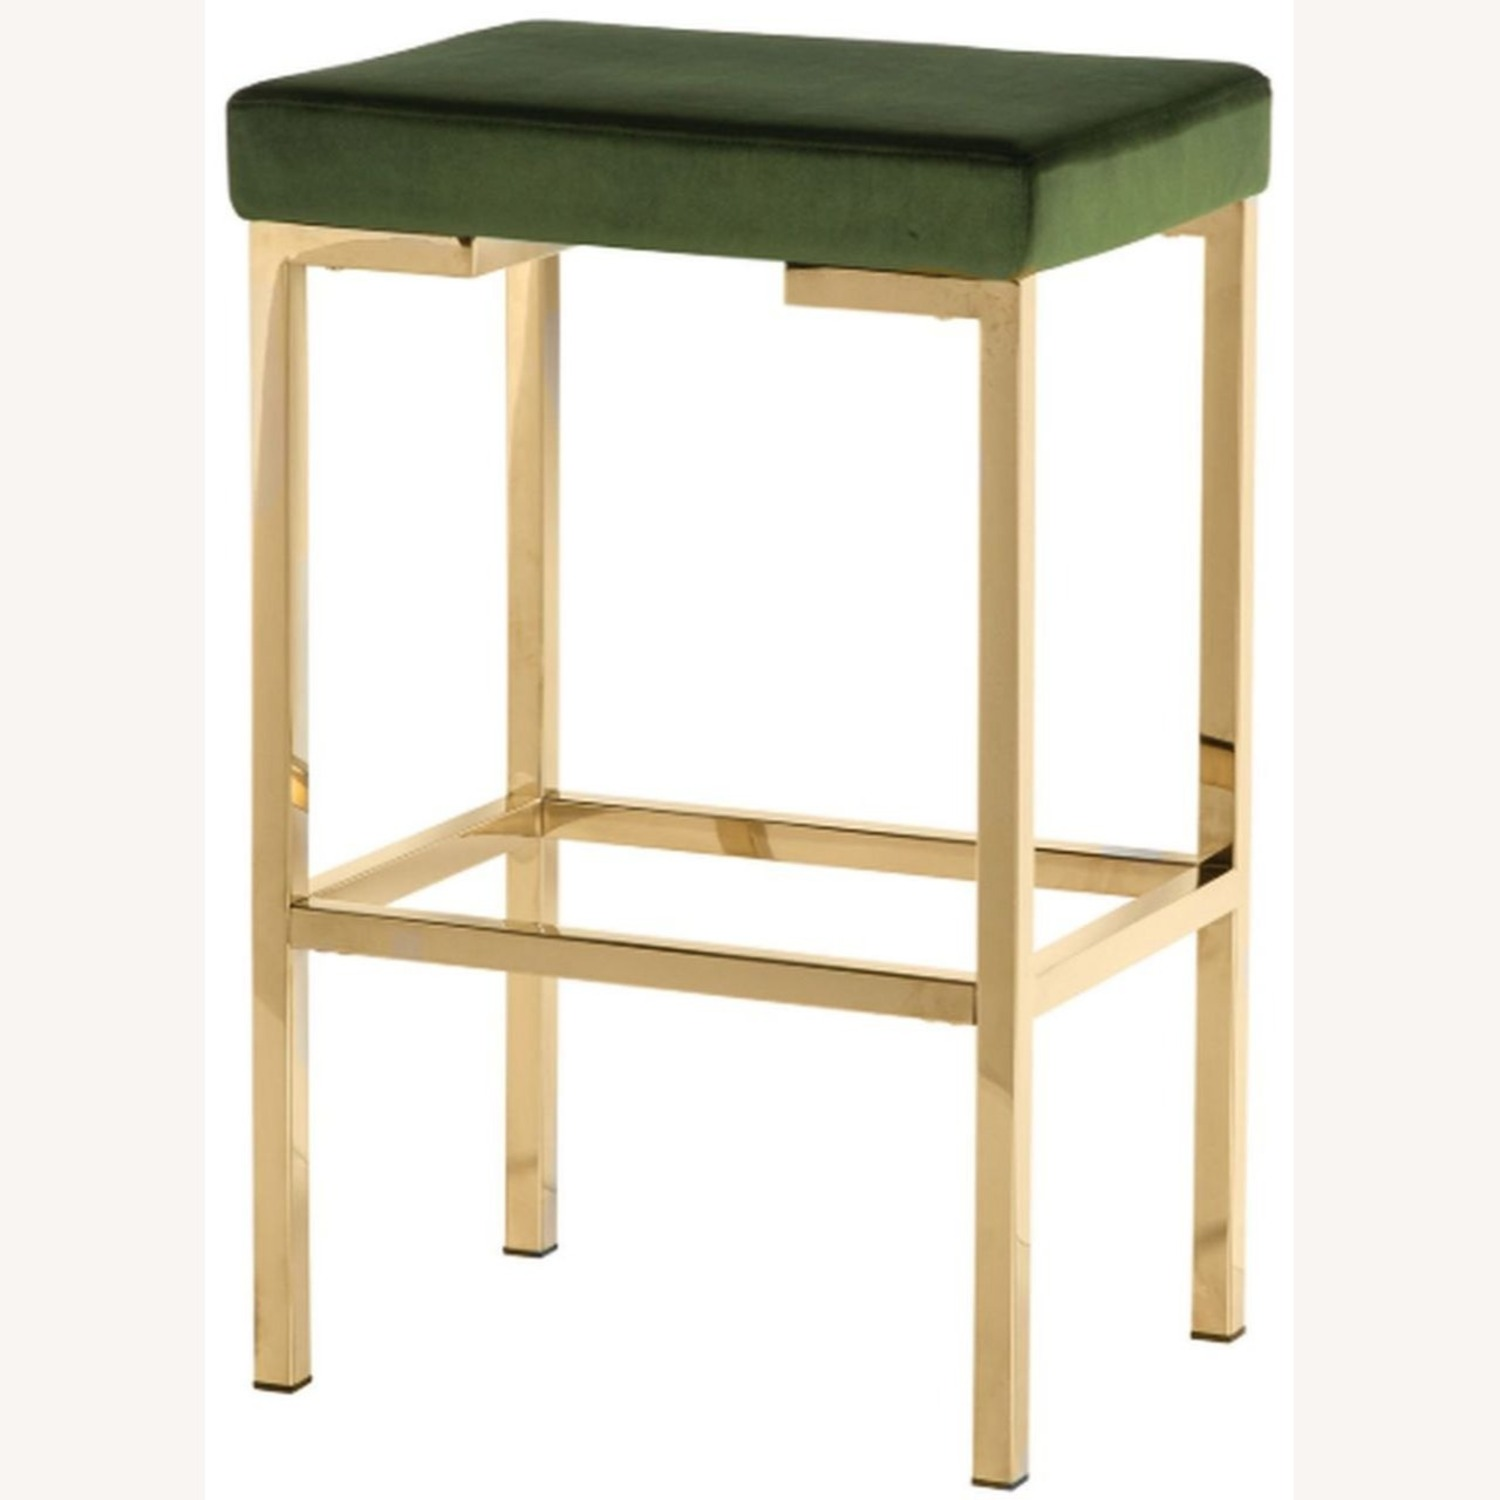 Minimalist Bar Stool In Green W/ Rose Brass Base - image-1